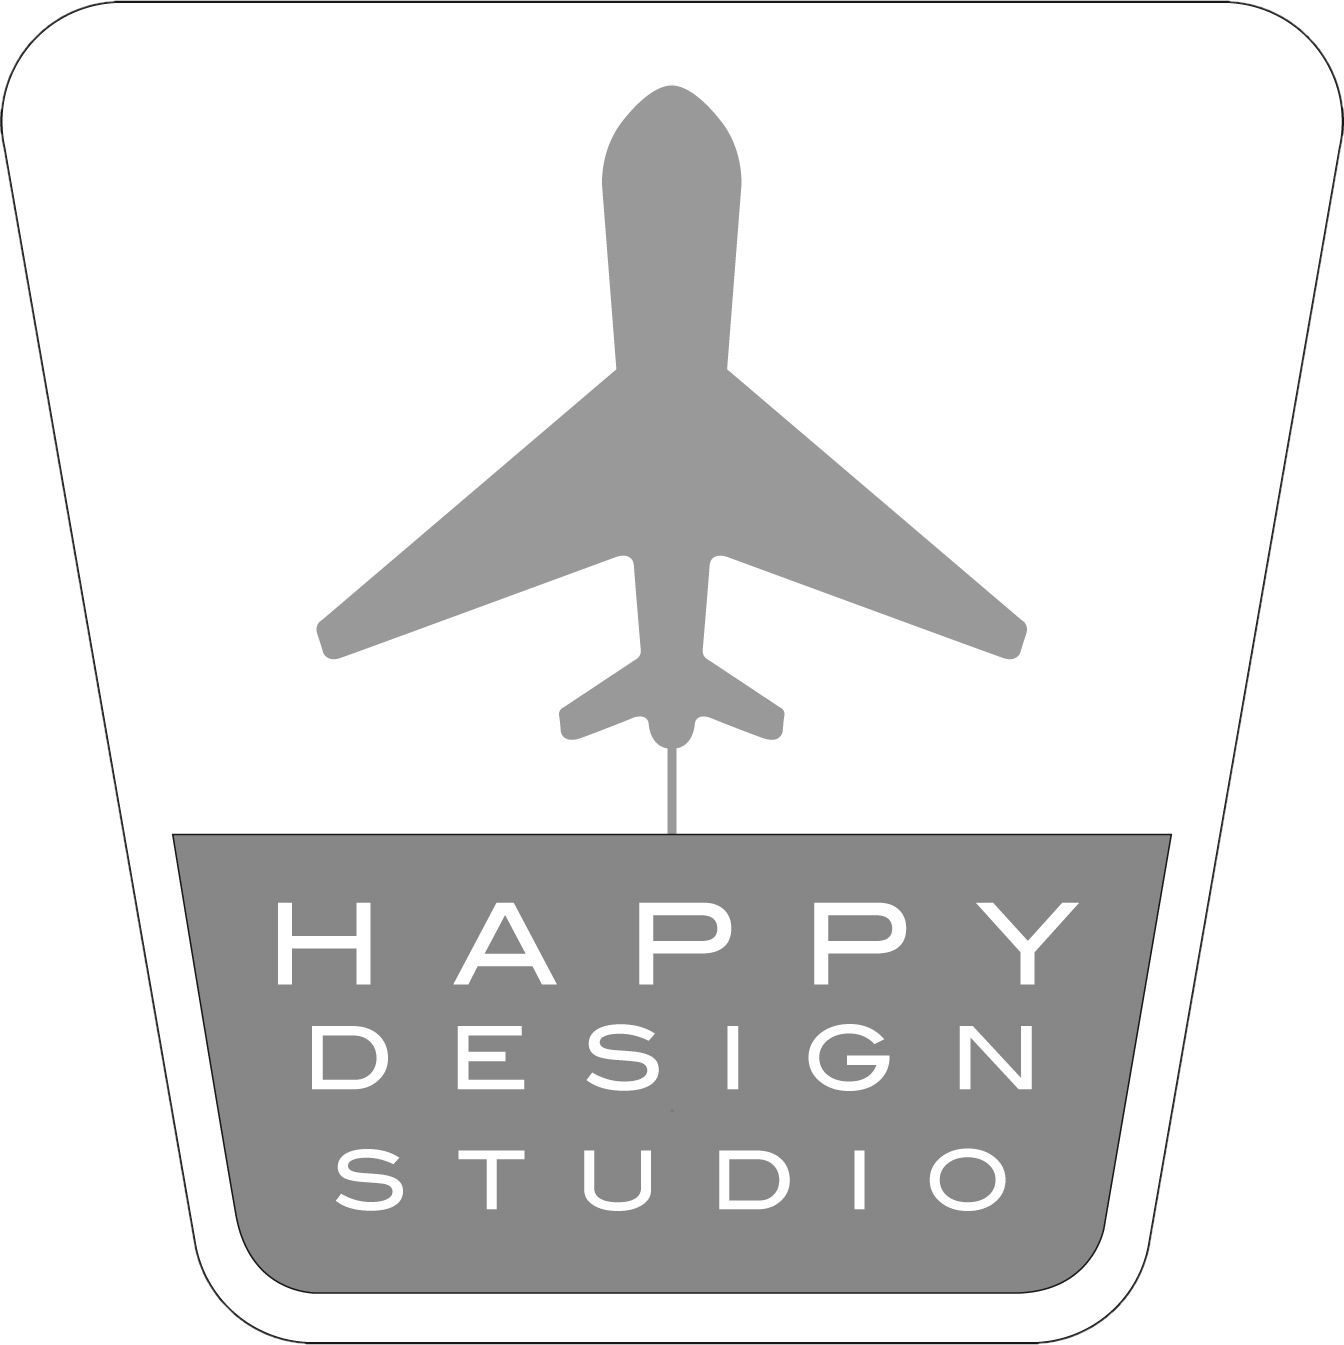 http://www.happydesign.net/mobile/ALL/ENGLISH.htm